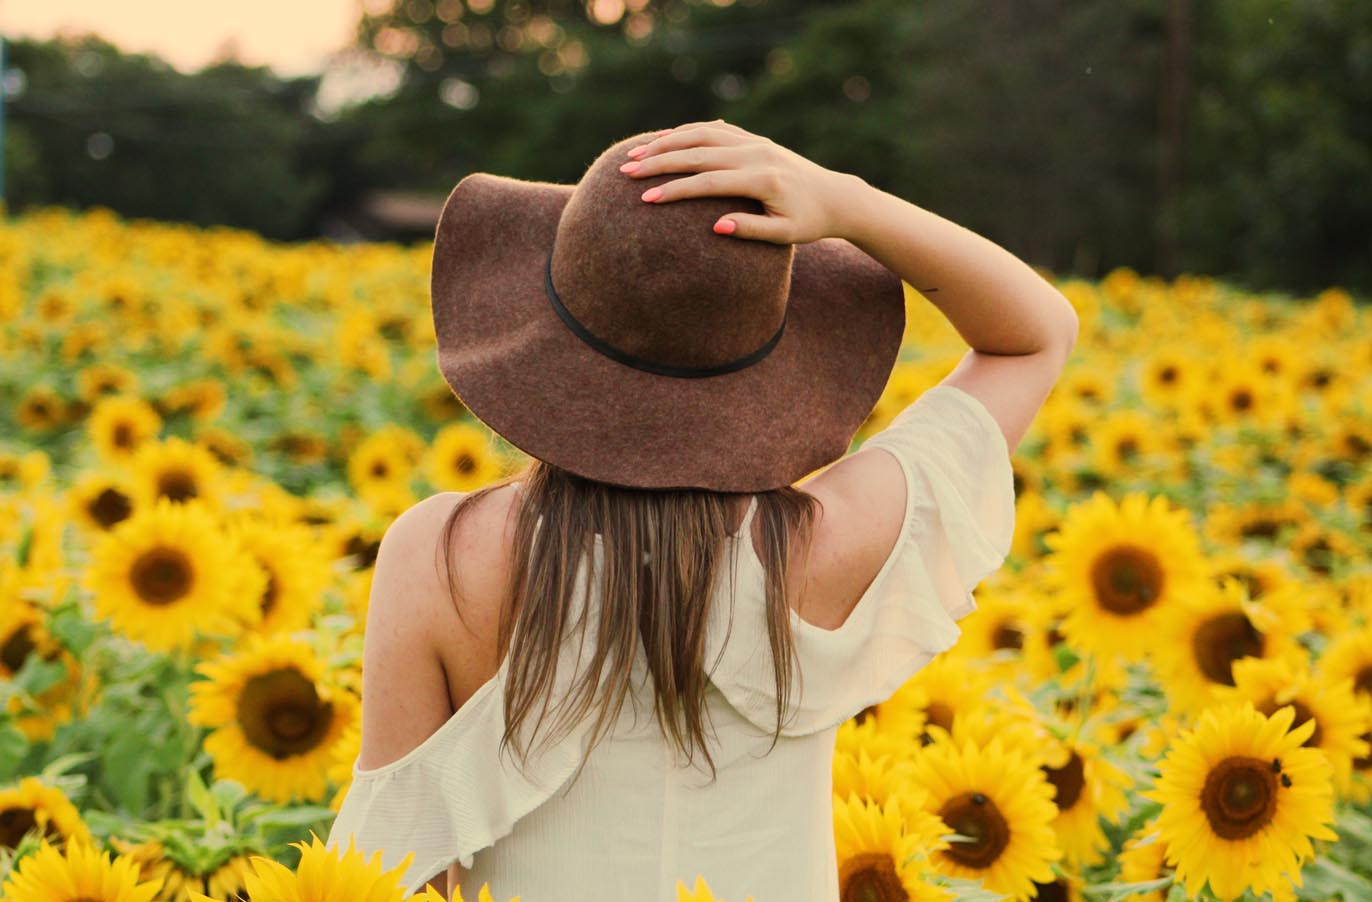 woman wearing white standing in a field of sunflowers